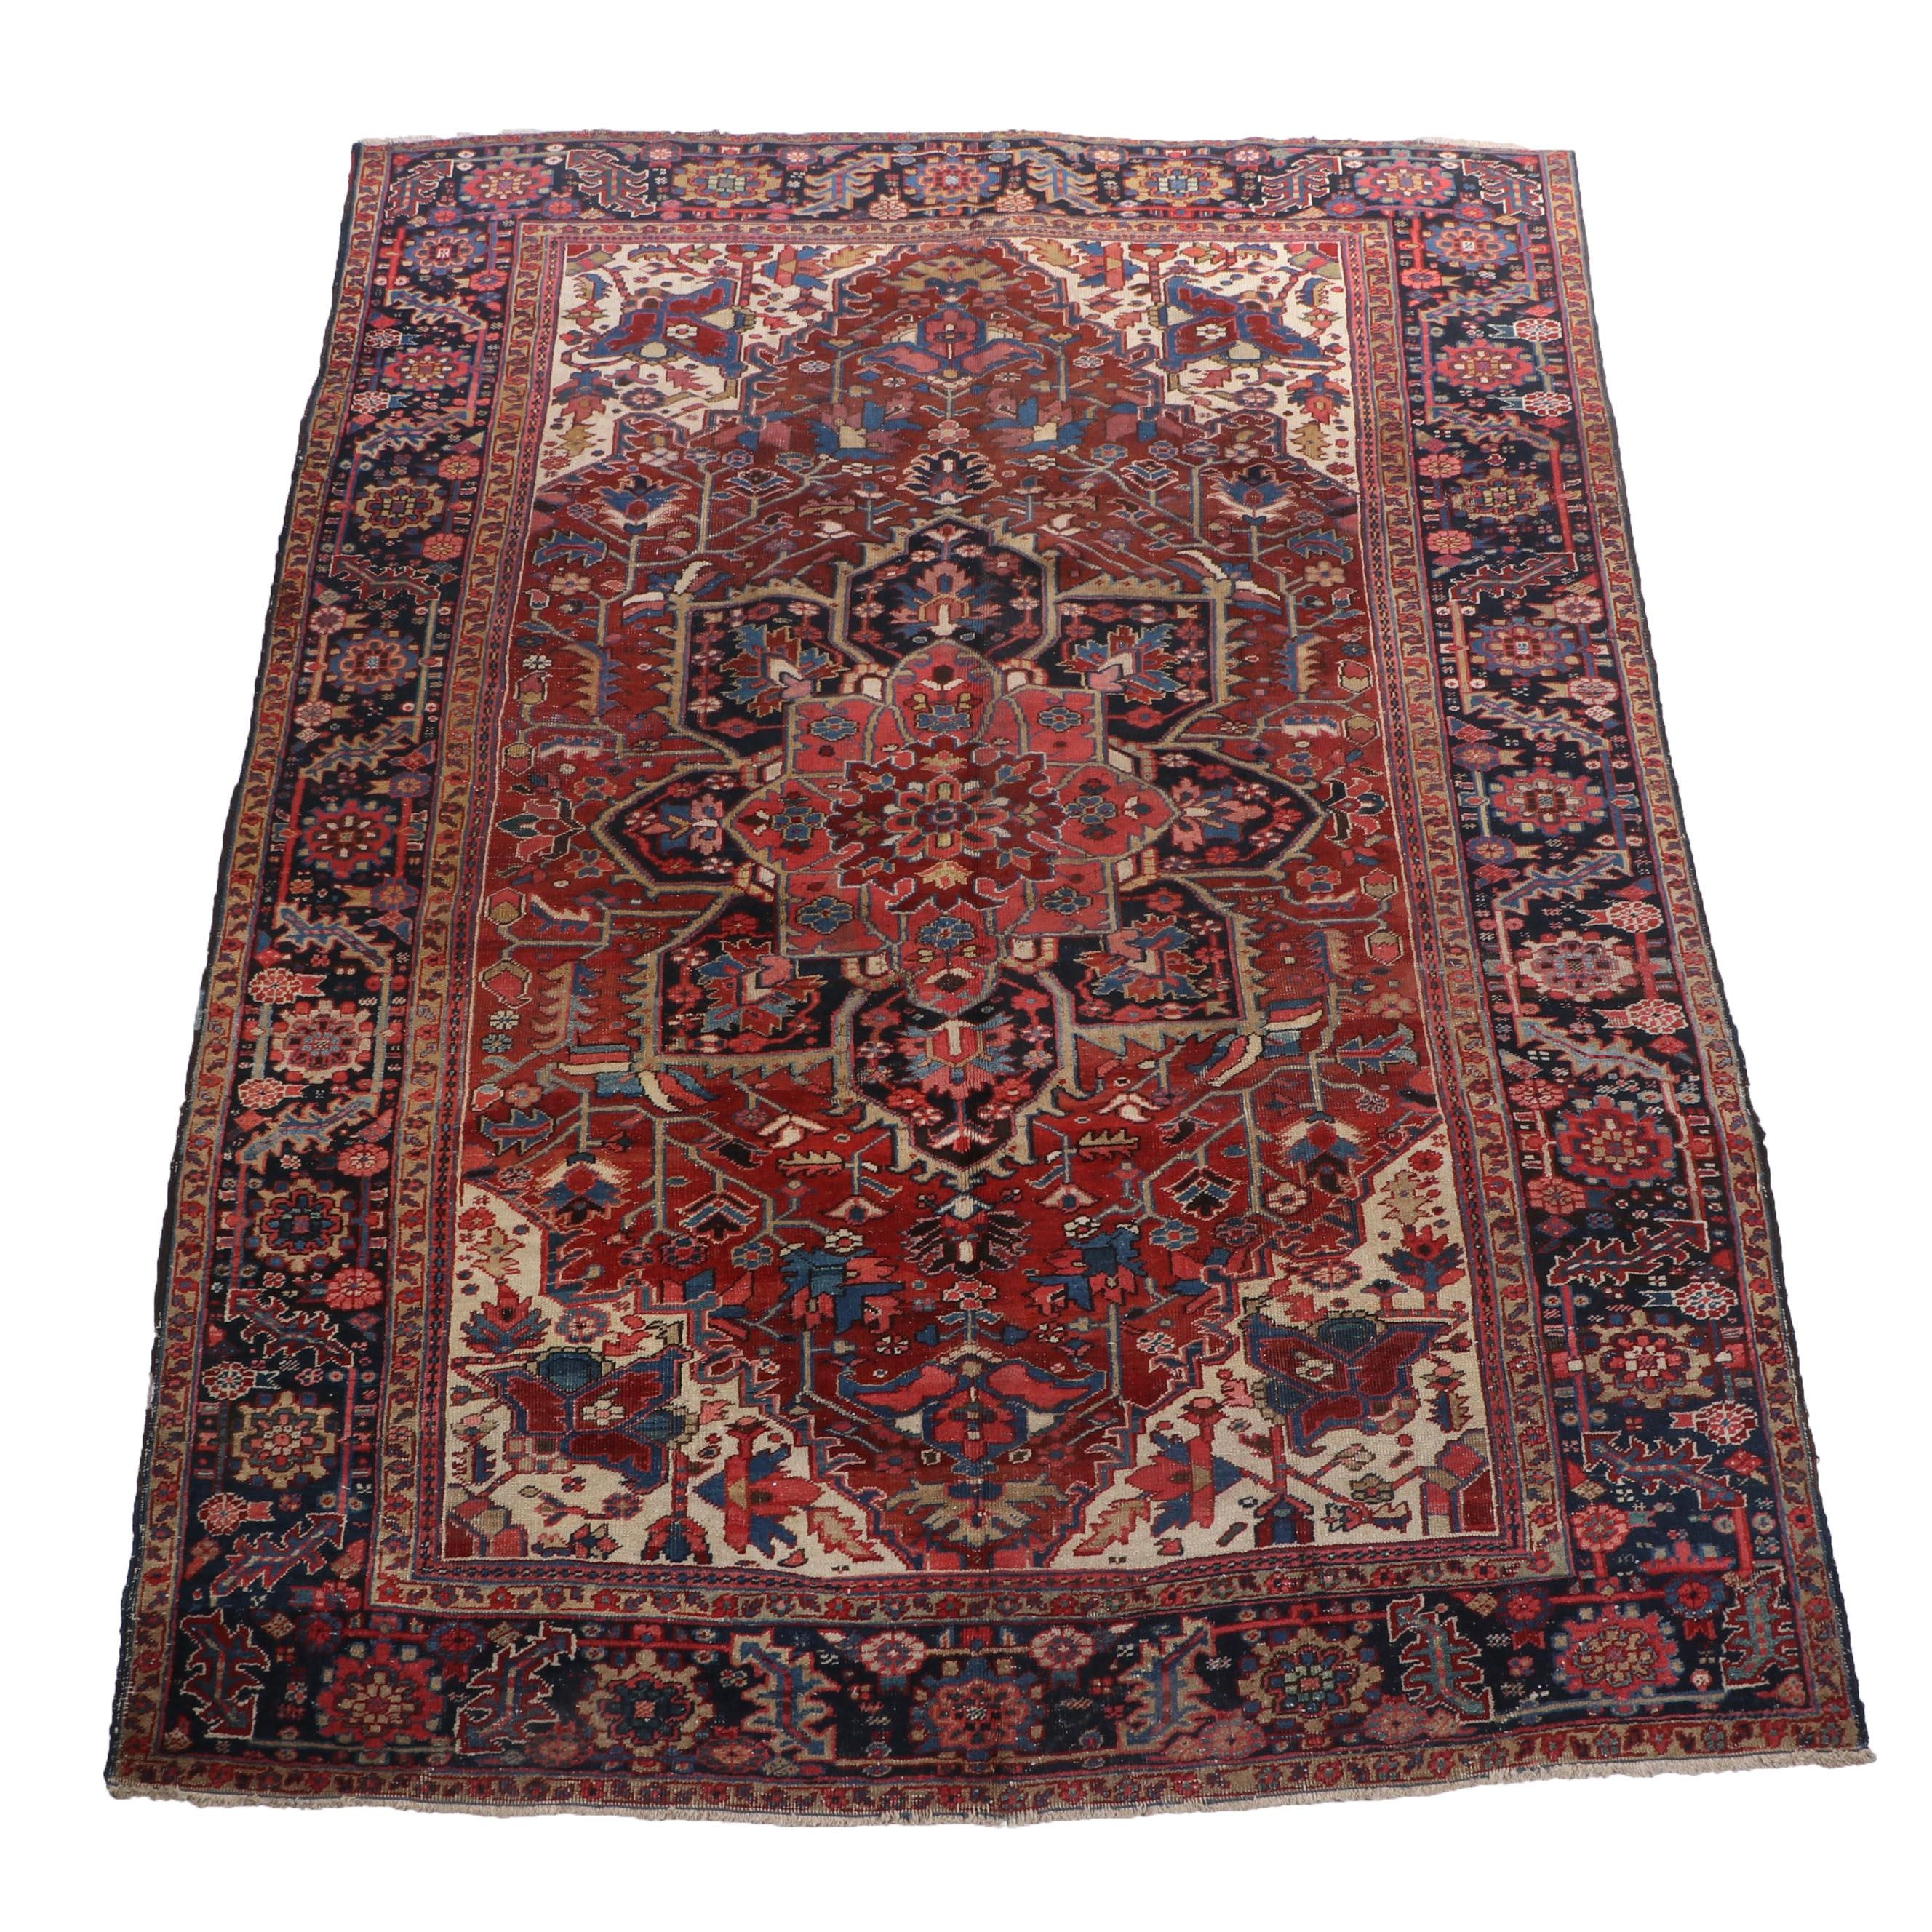 Hand-Knotted Persian Heriz Room Sized Rug, Ca. 1930